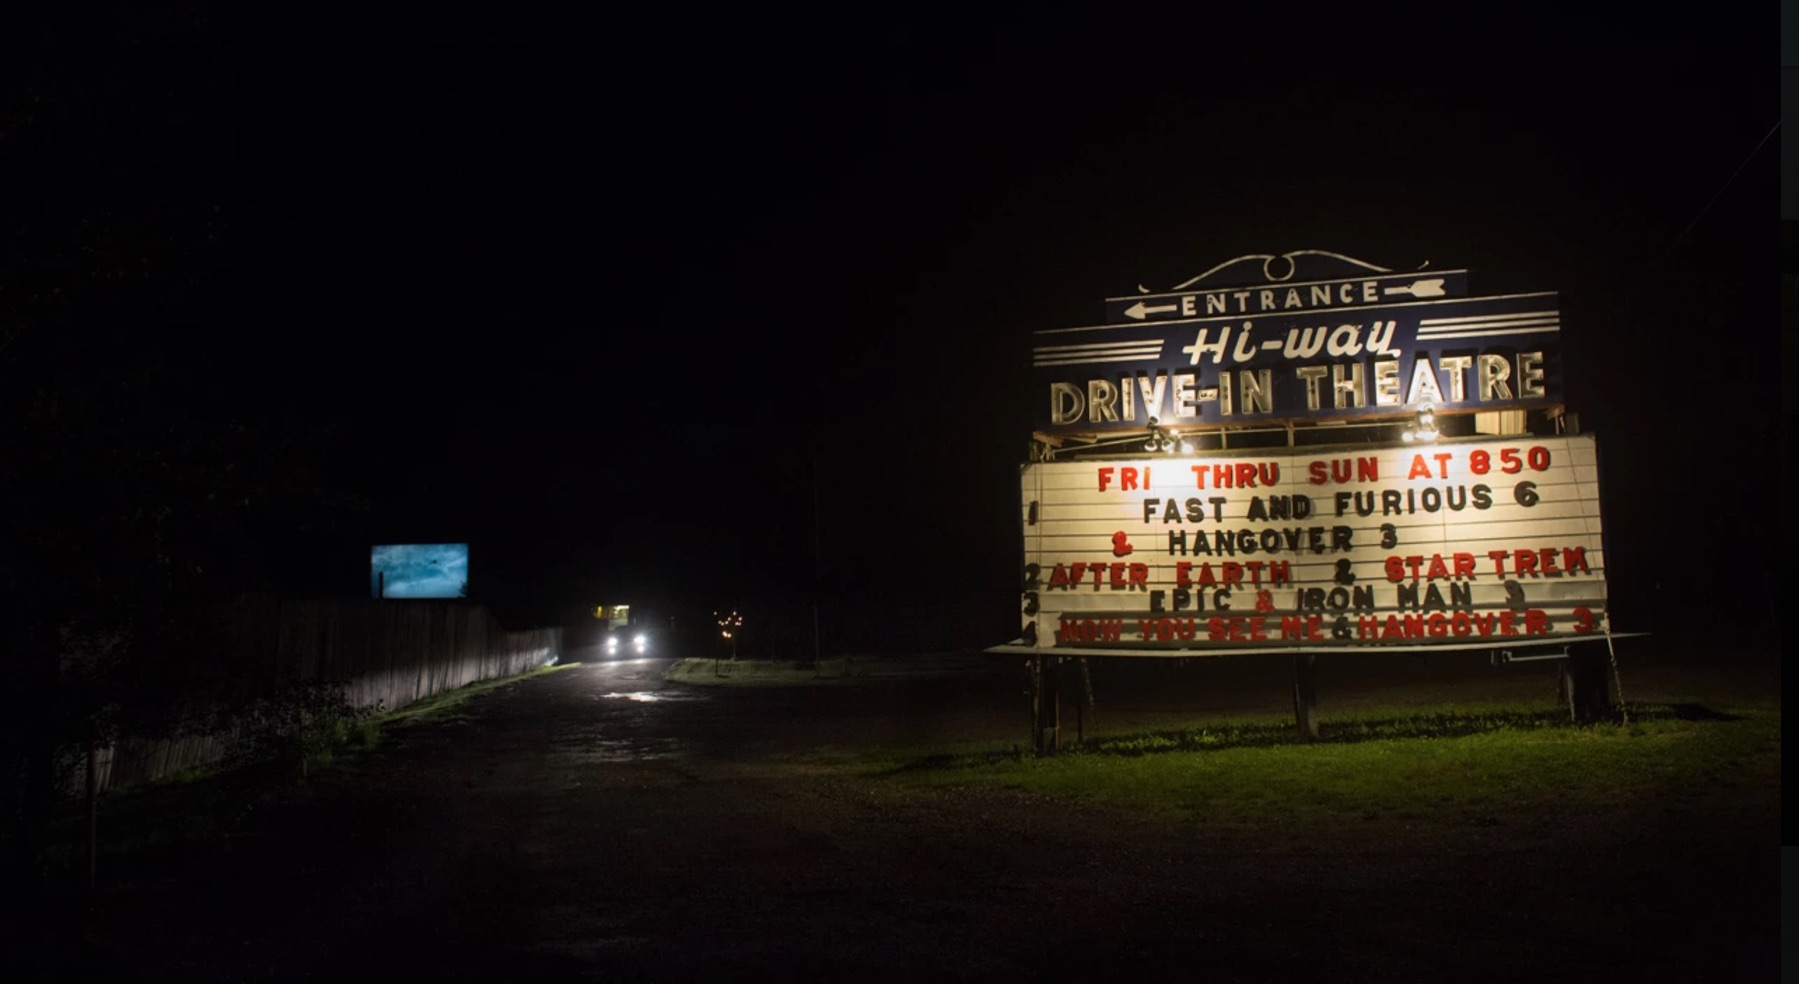 The Hi-Way Drive-in Theater illuminated sign